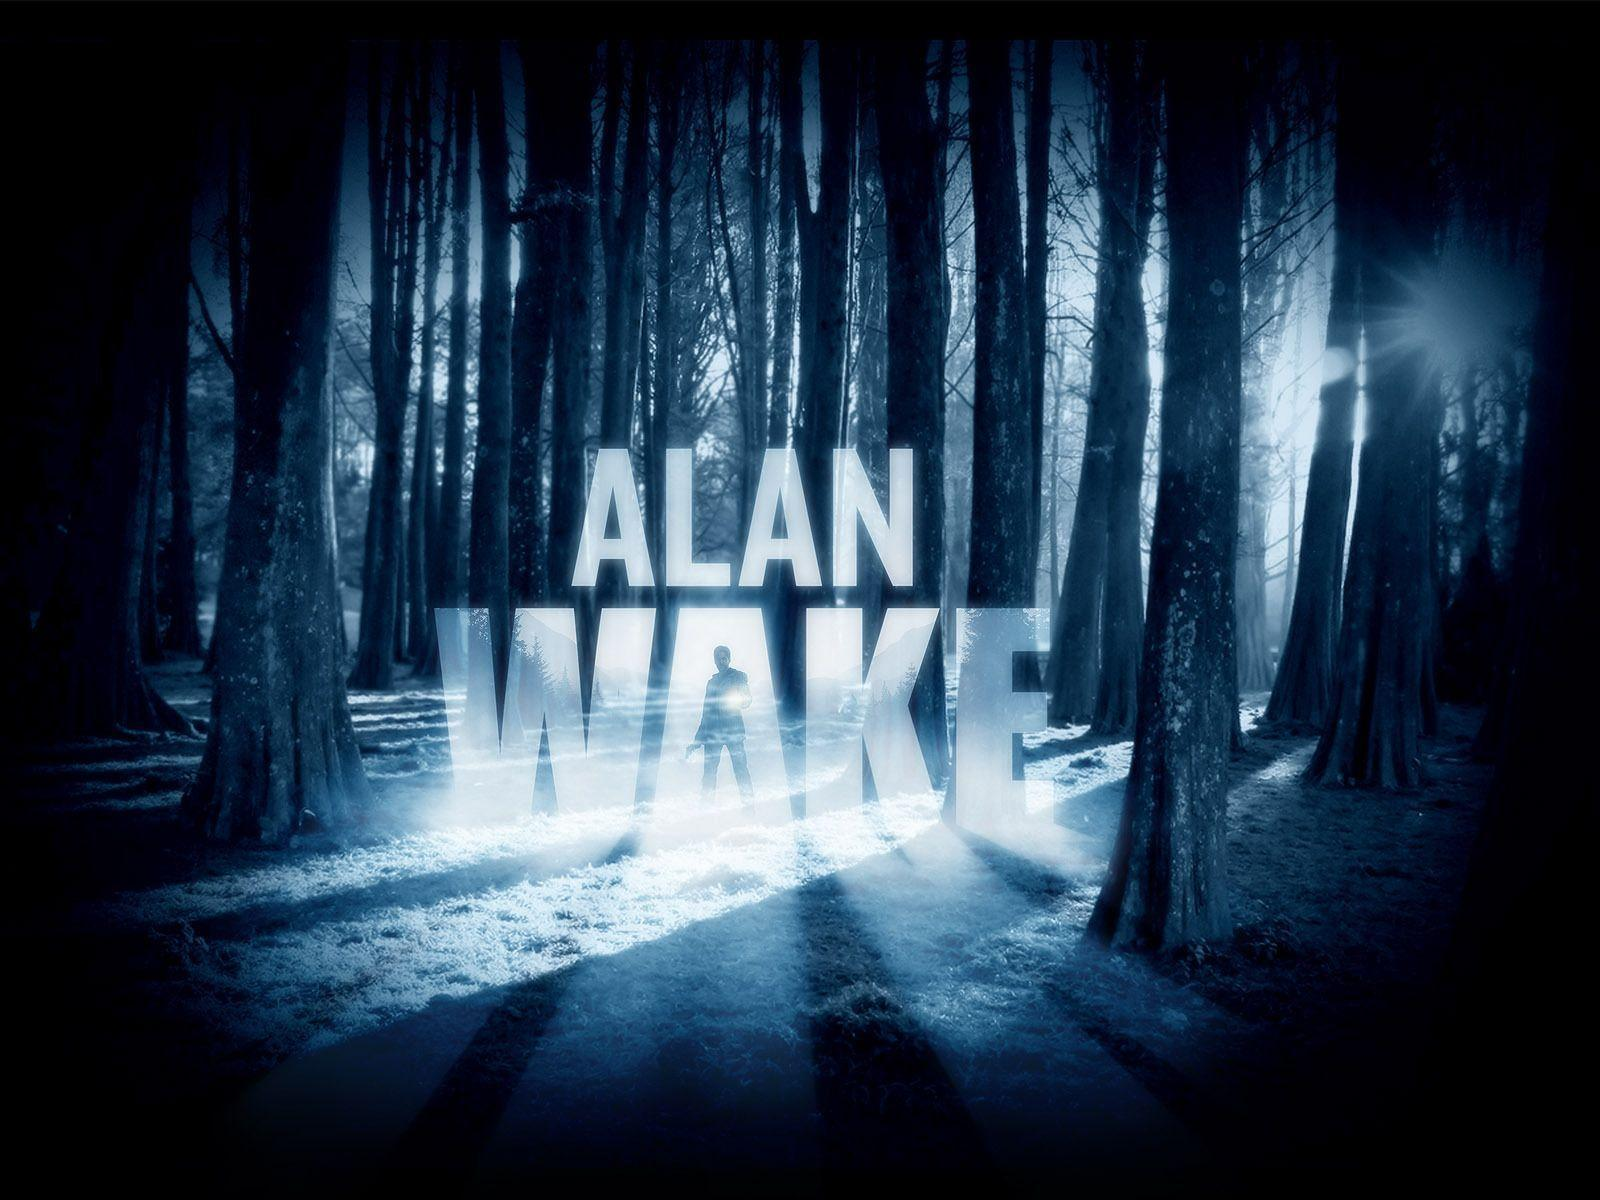 Alan Wake Wallpapers 1600x1200